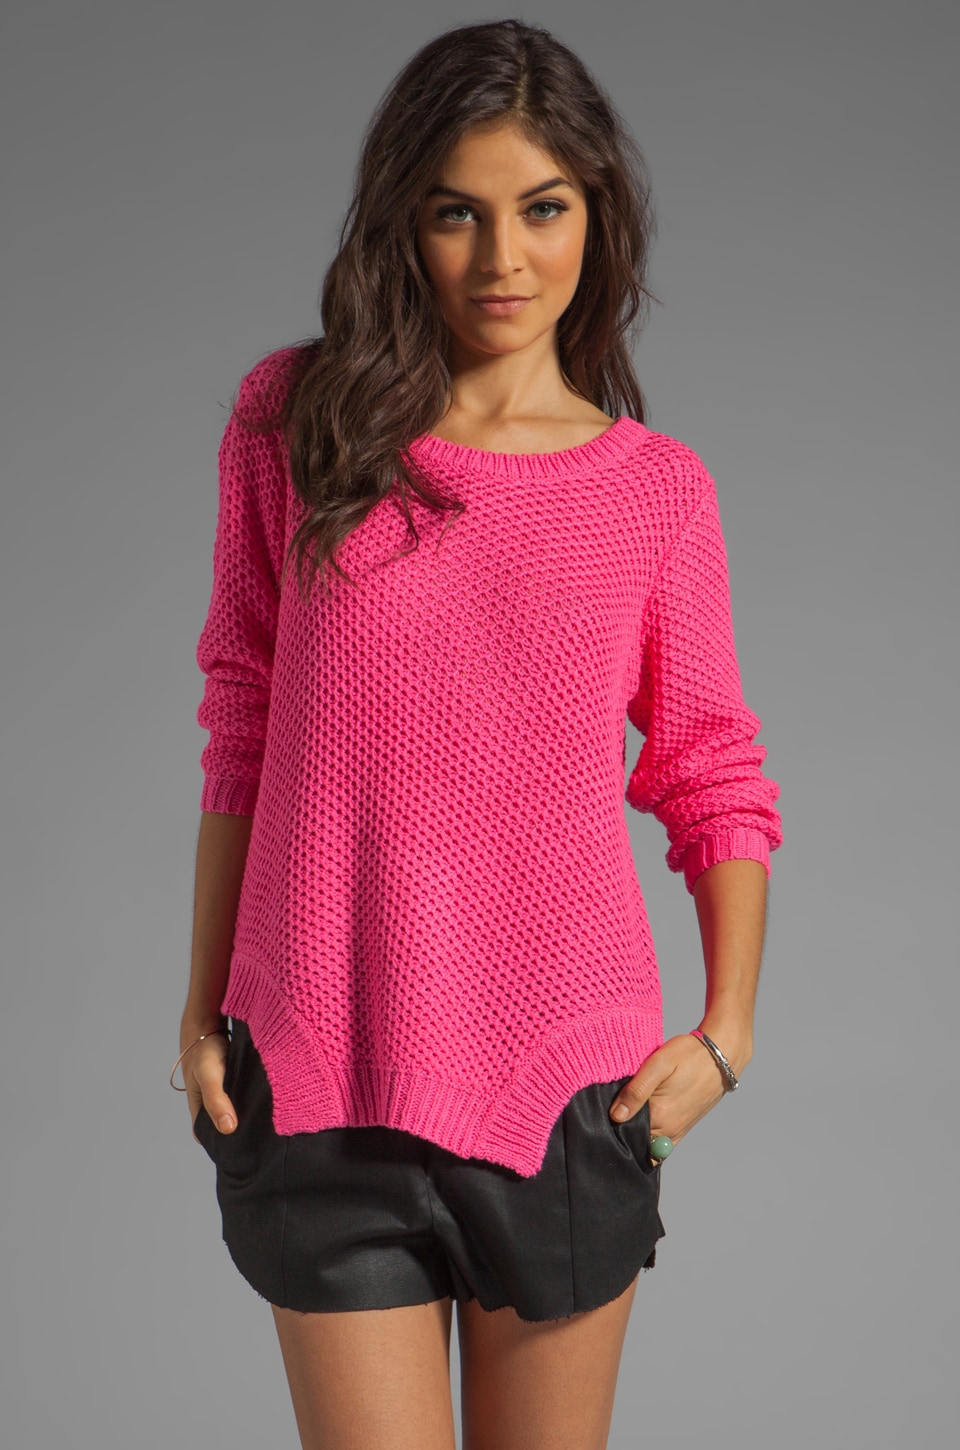 STYLESTALKER Moon Base Sweater in Vivid Pink